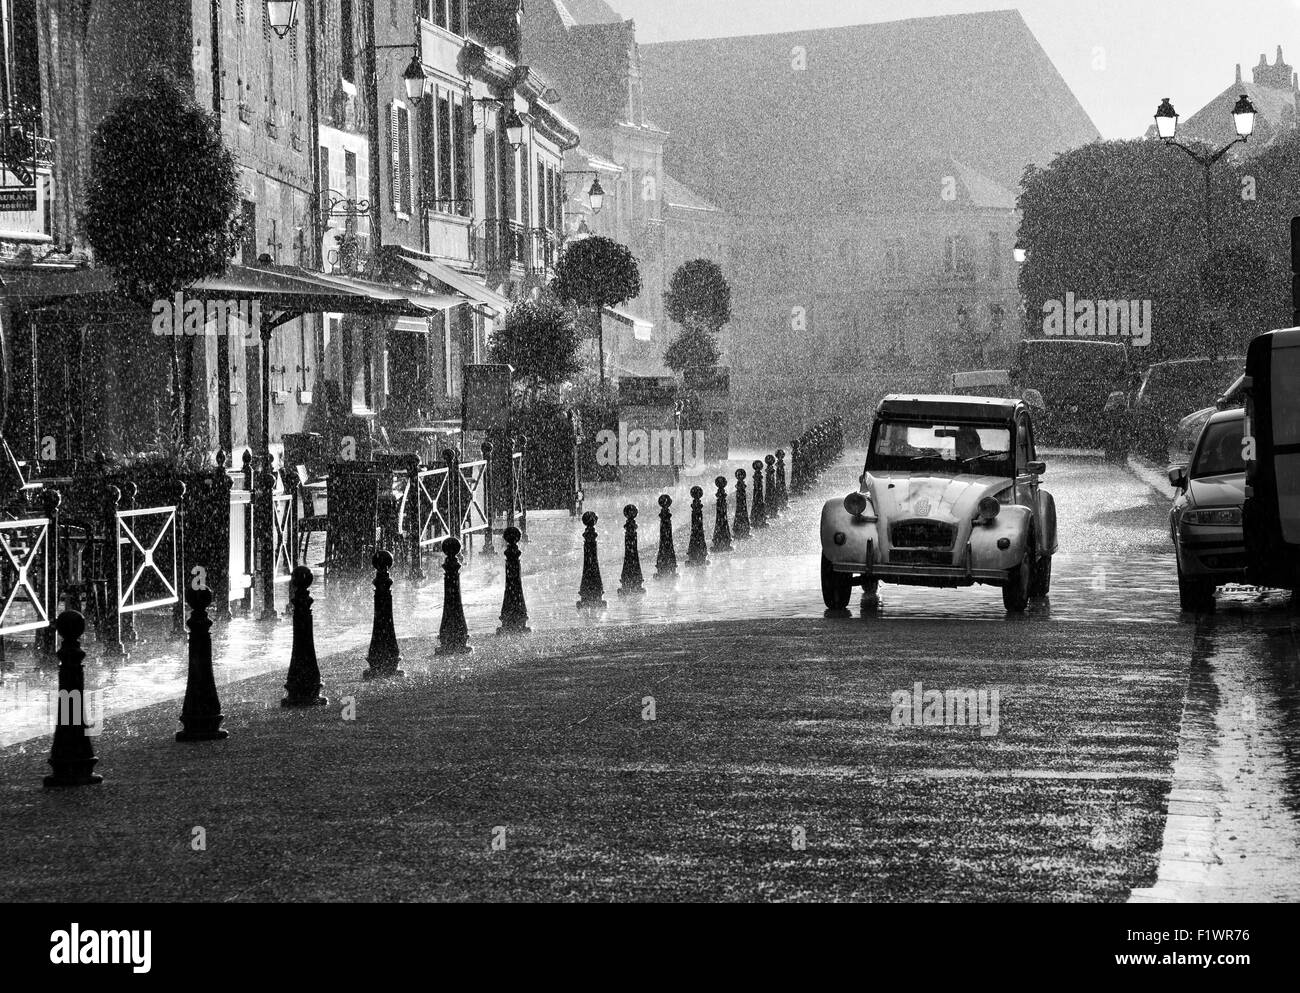 french street scene classic citroen 2cv car driving along a street in stock photo 87233530 alamy. Black Bedroom Furniture Sets. Home Design Ideas